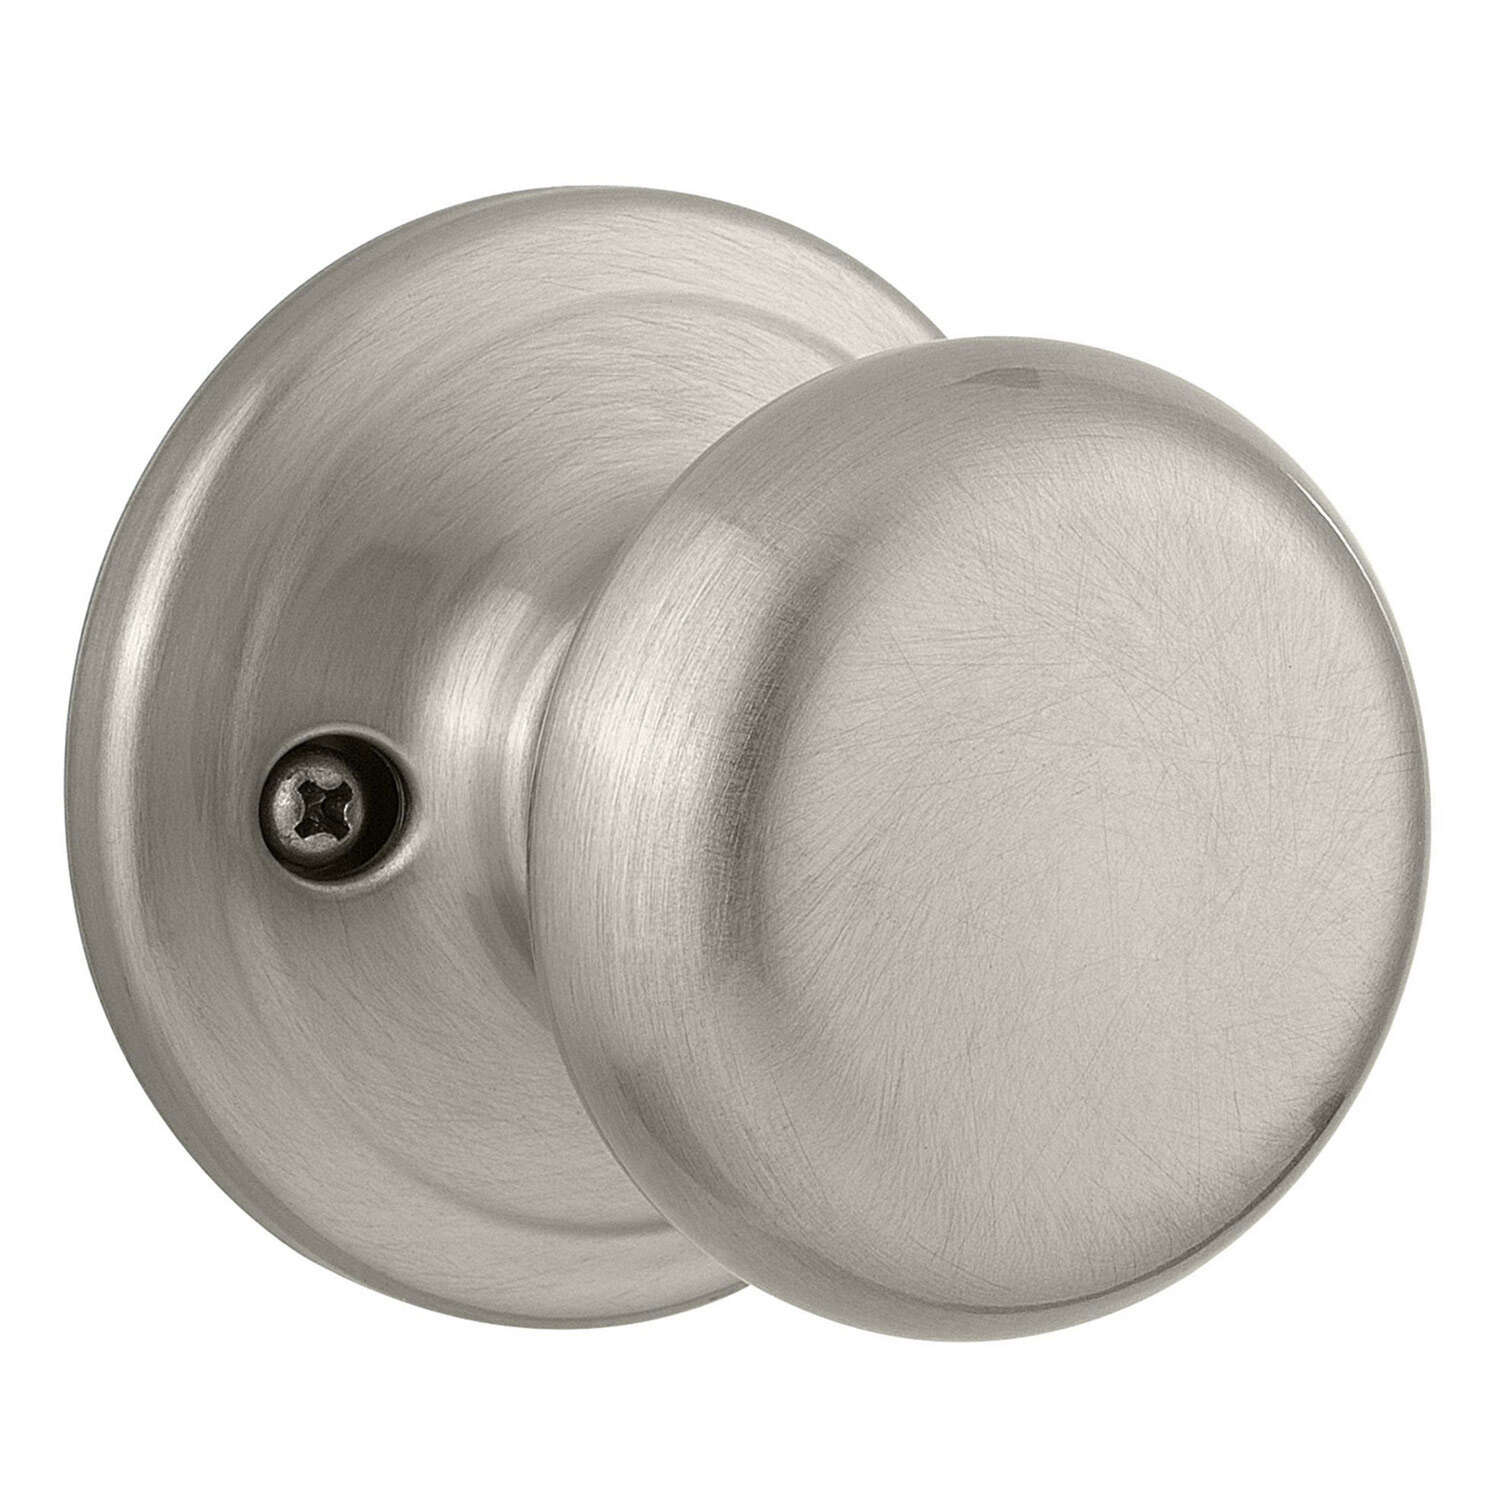 Kwikset  Juno  Satin Nickel  Steel  Dummy Knob  2 Grade Right or Left Handed